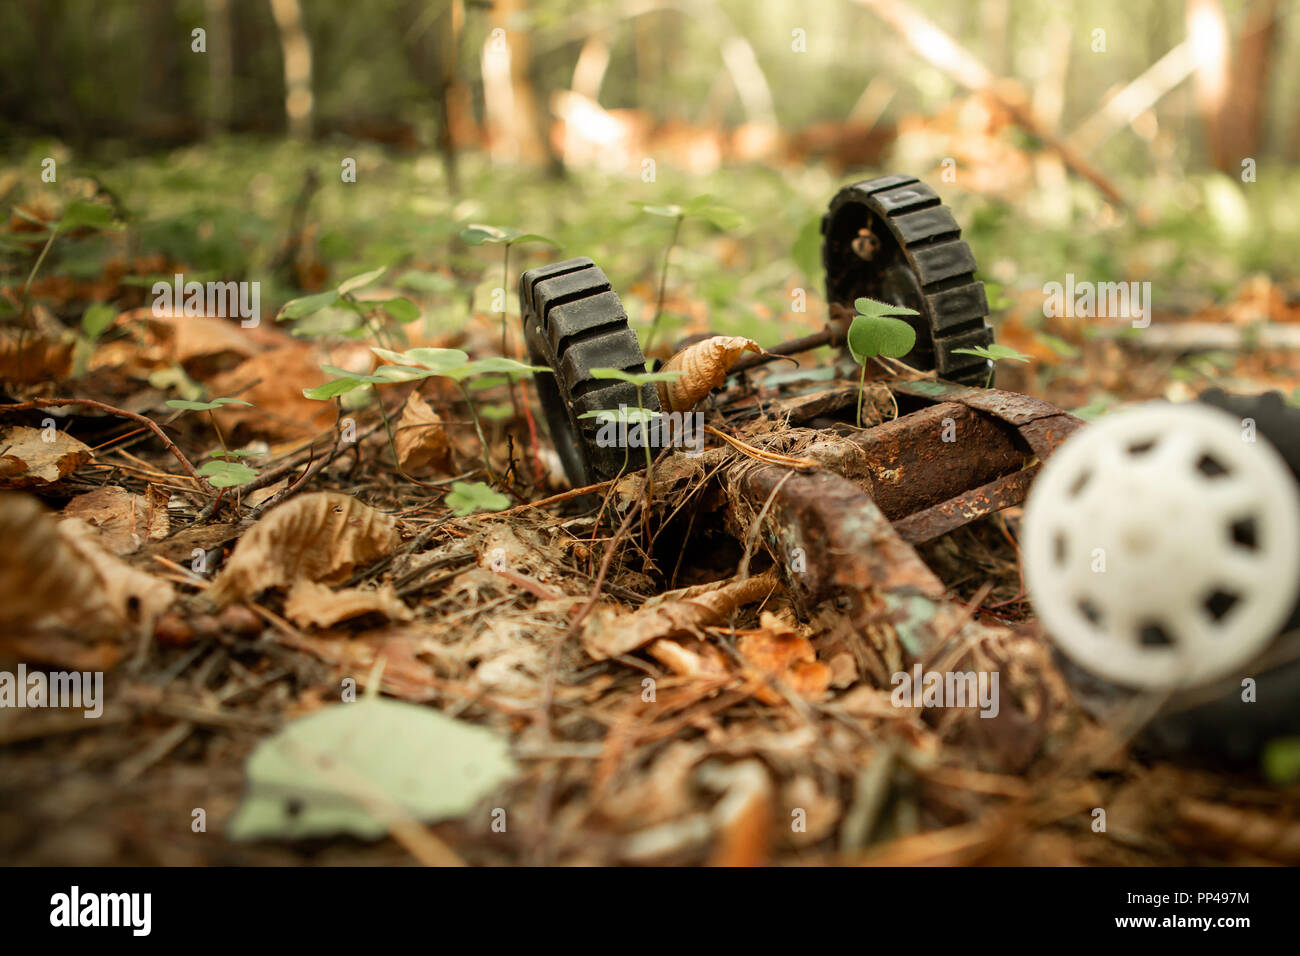 An old, abandoned toy left in the forest. Rusty, children's typewriter in the autumn foliage. Sunlight. A rough plan. - Stock Image